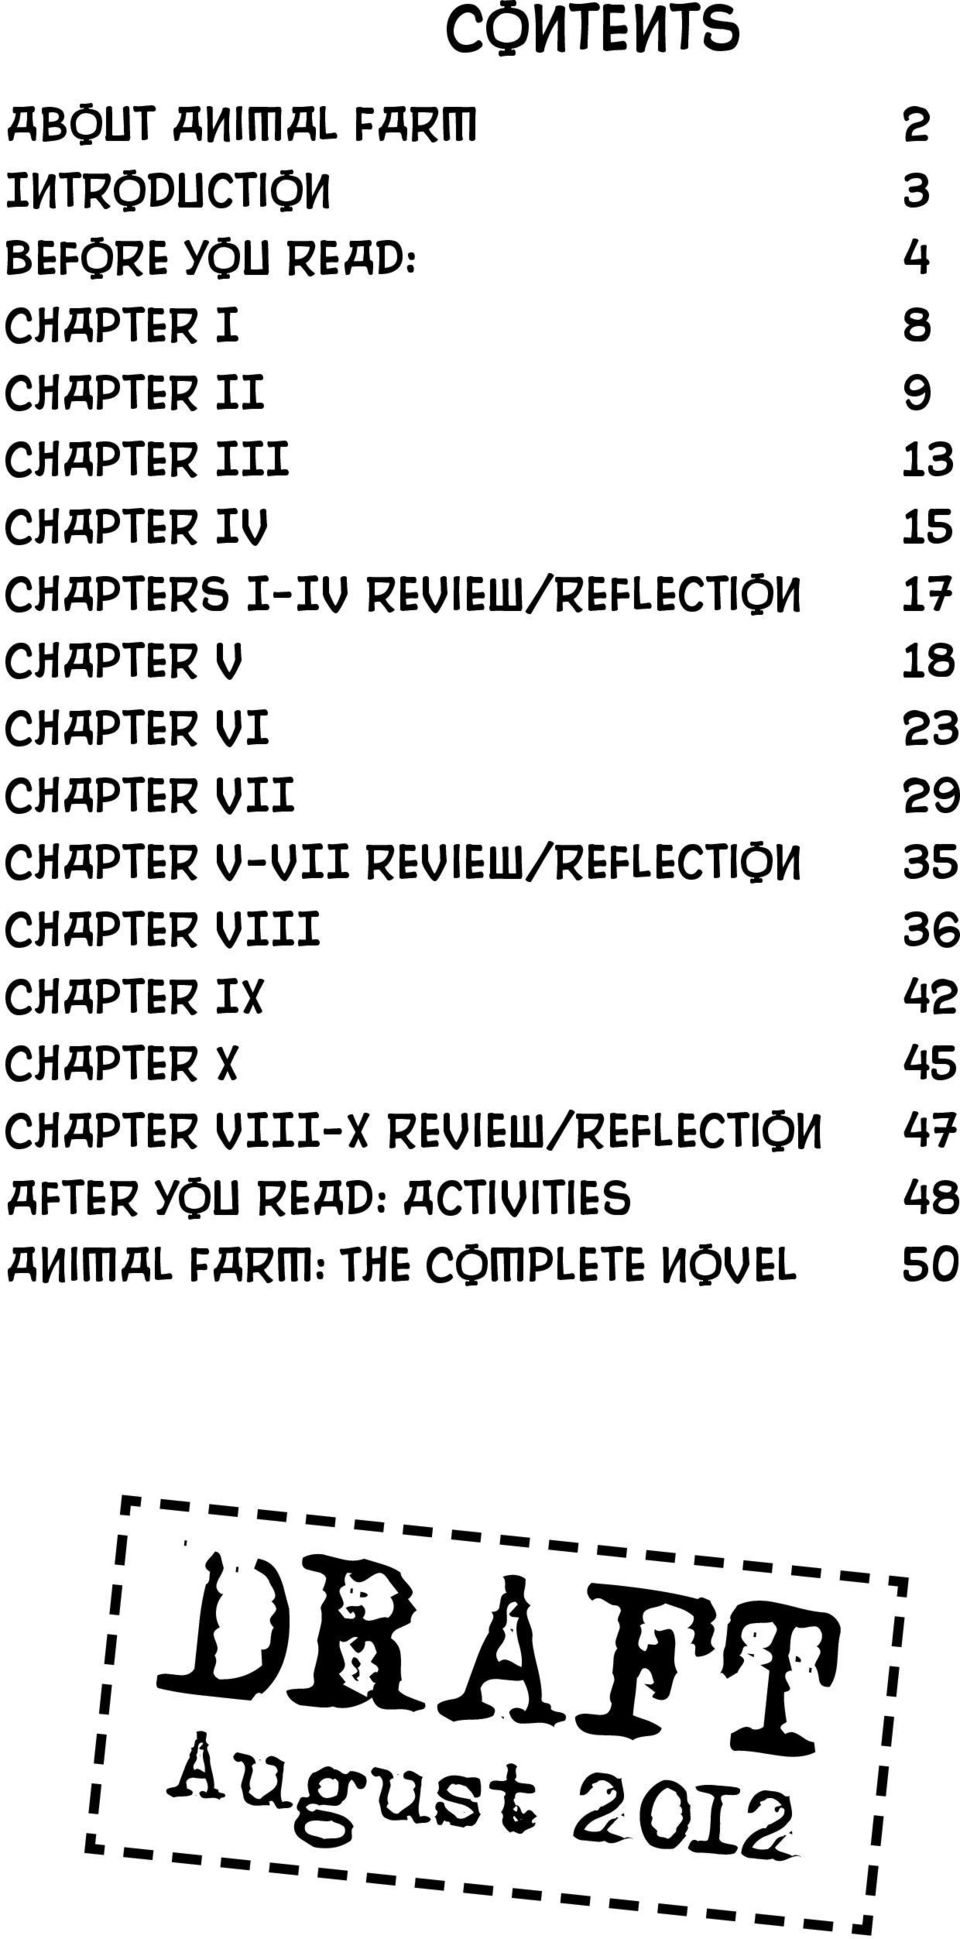 Chapter V-VII Review/Reflection 35 Chapter VIII 36 Chapter IX 42 Chapter X 45 Chapter VIII-X